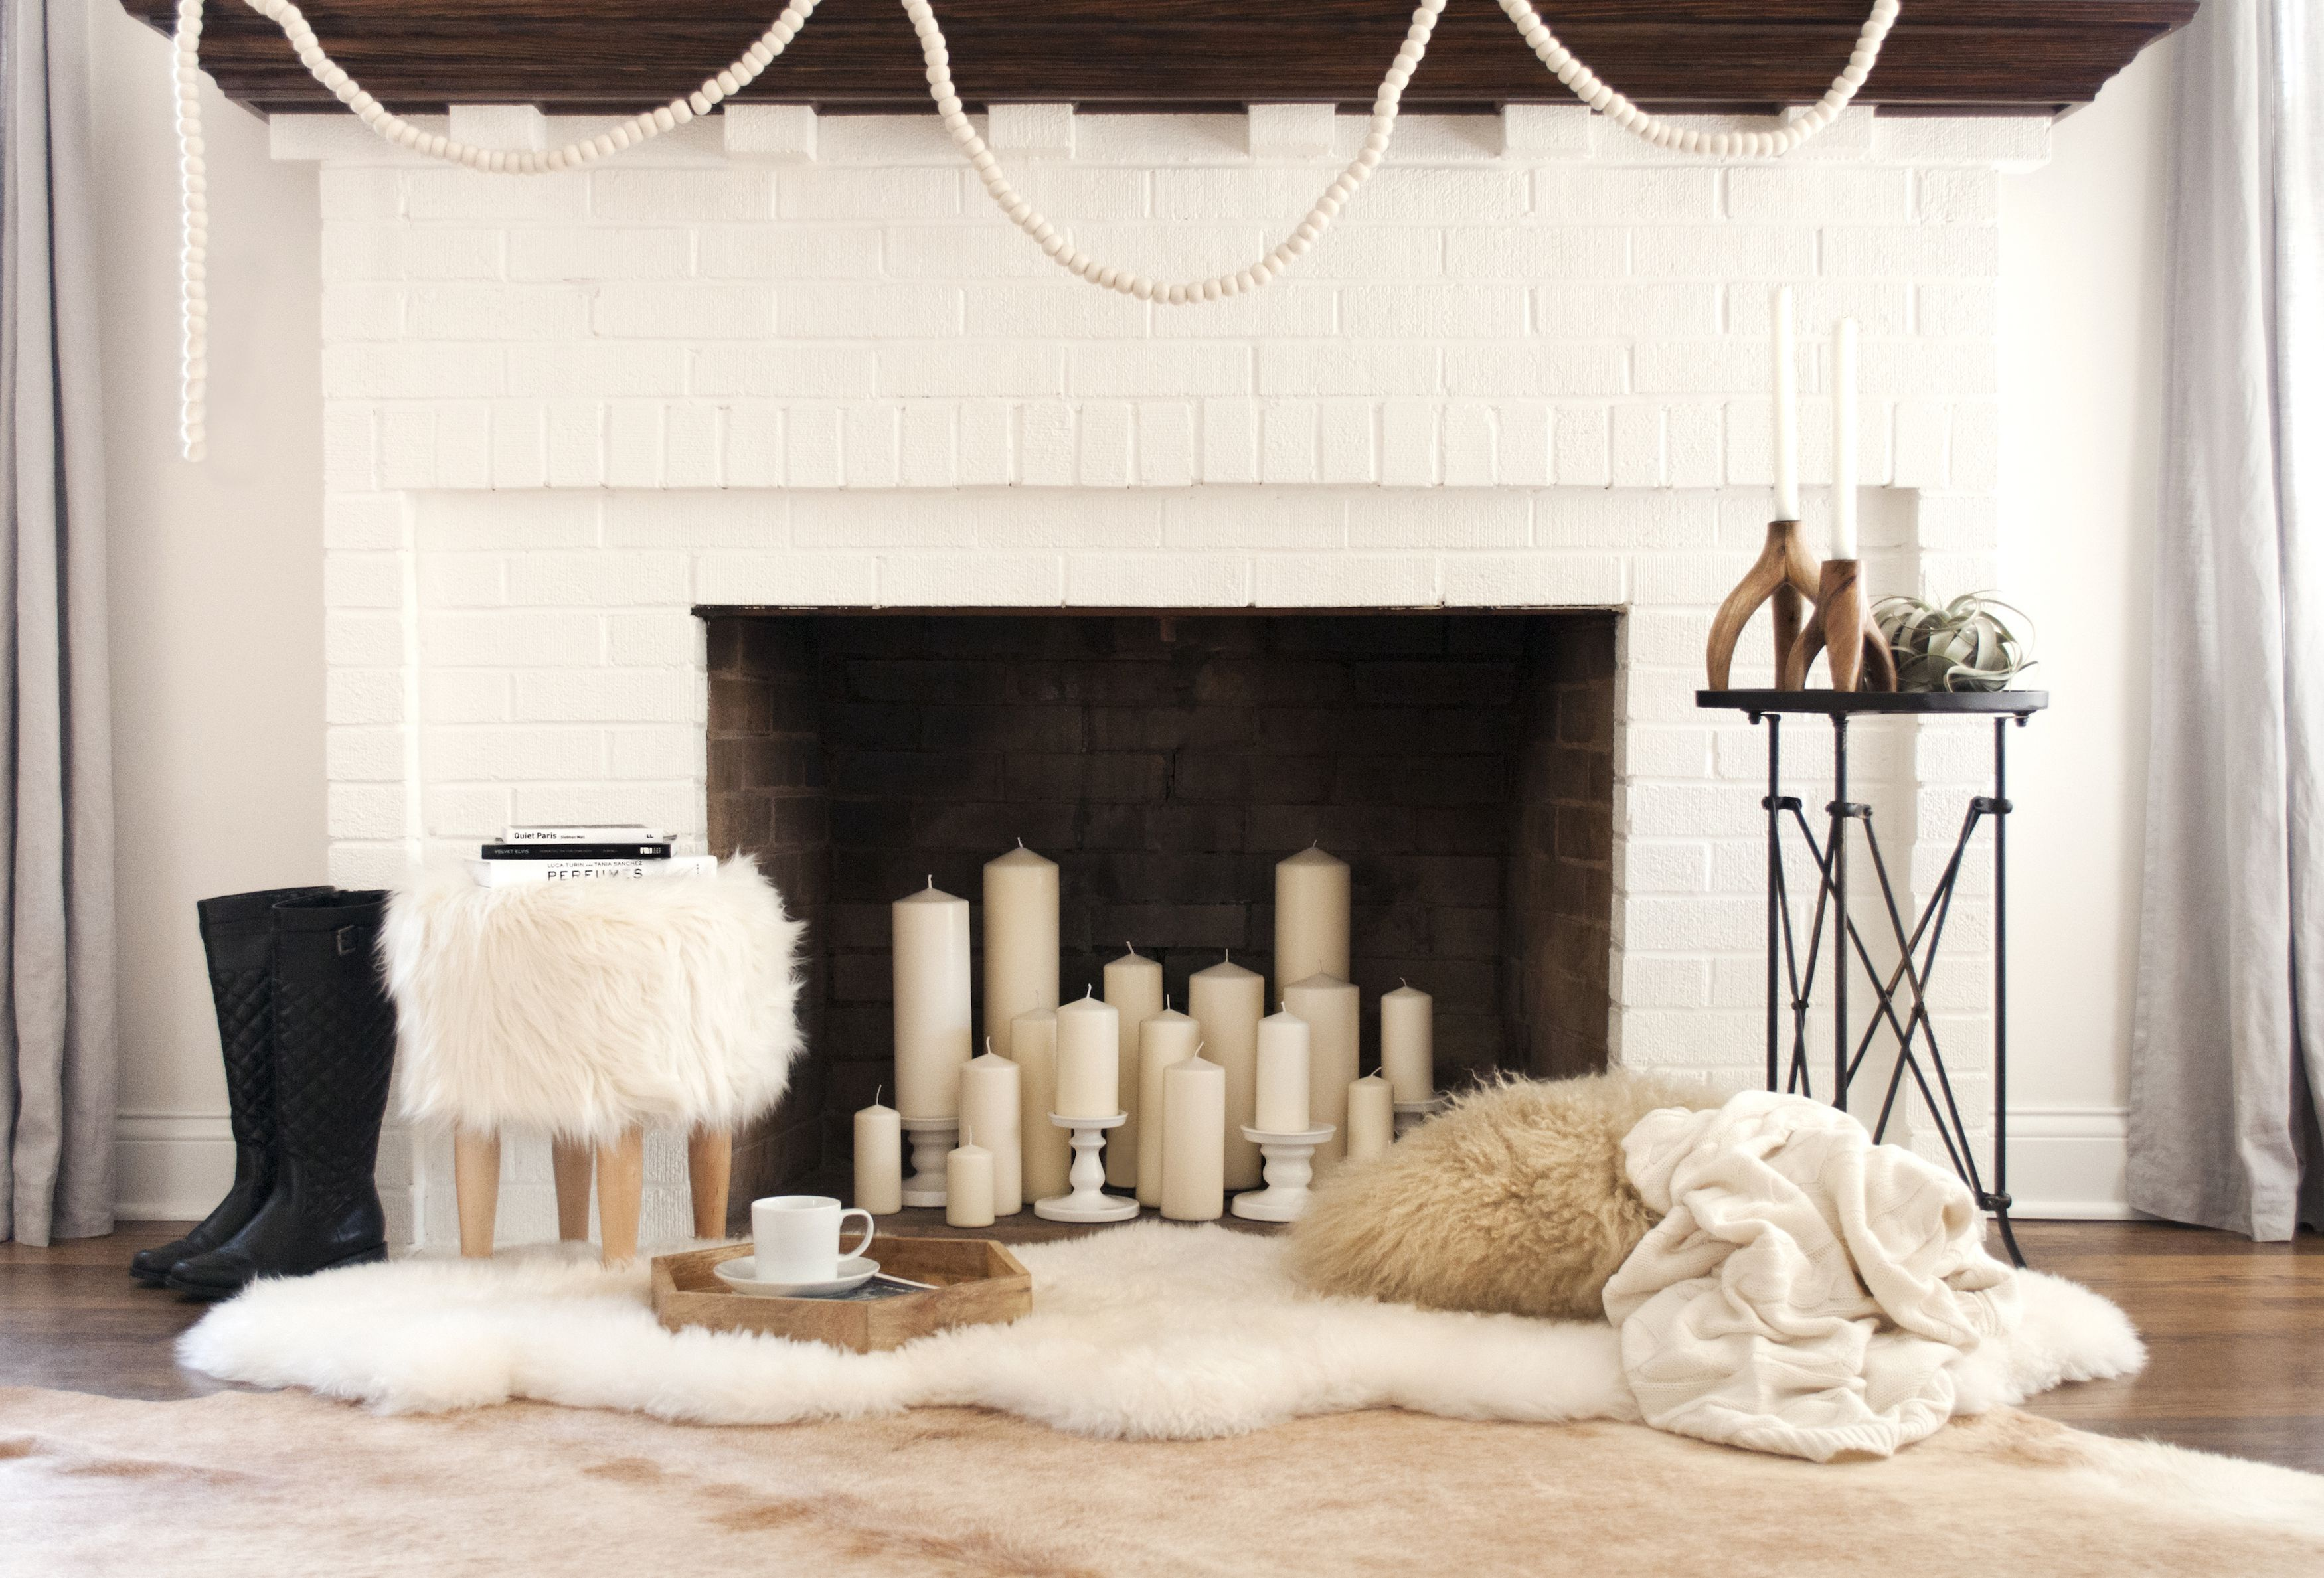 12 Decorating Ideas For Nonworking Fireplace Design - Living Room